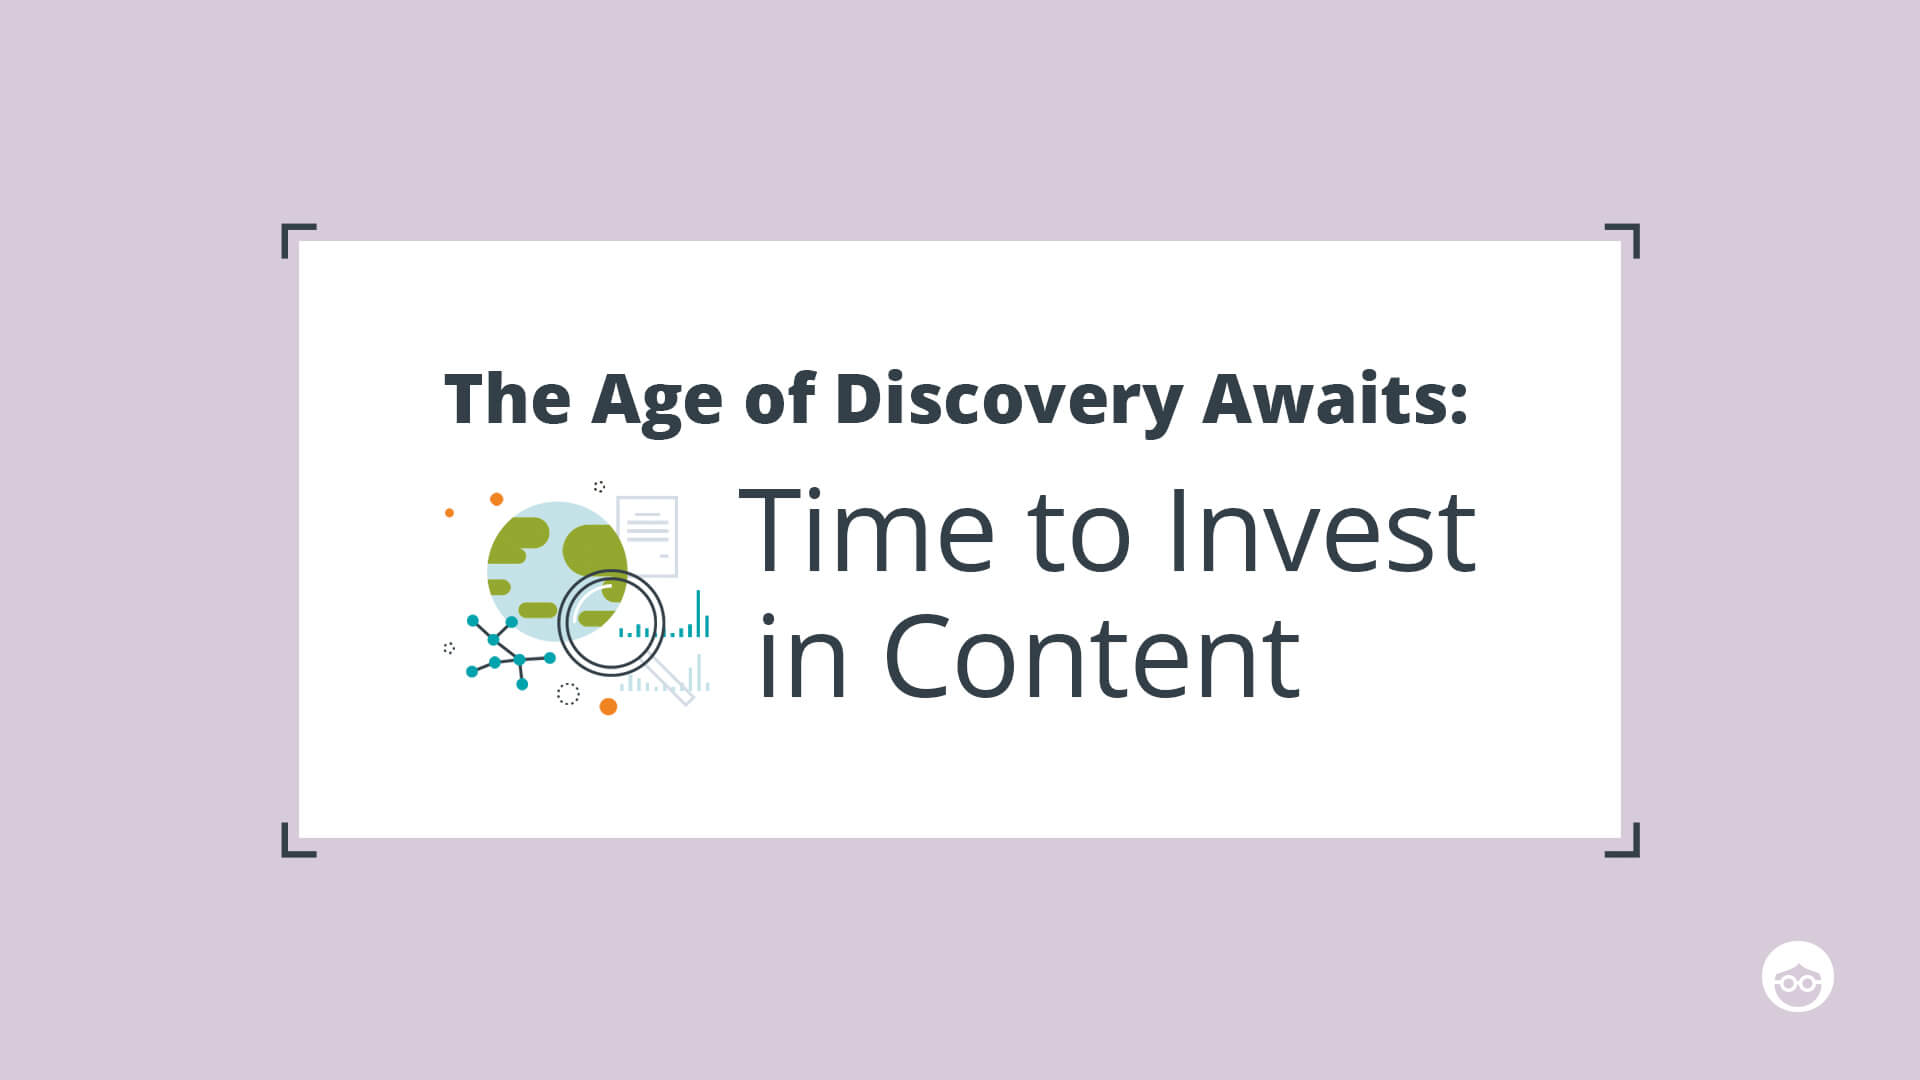 The Age of Discovery: Time to Invest in Content